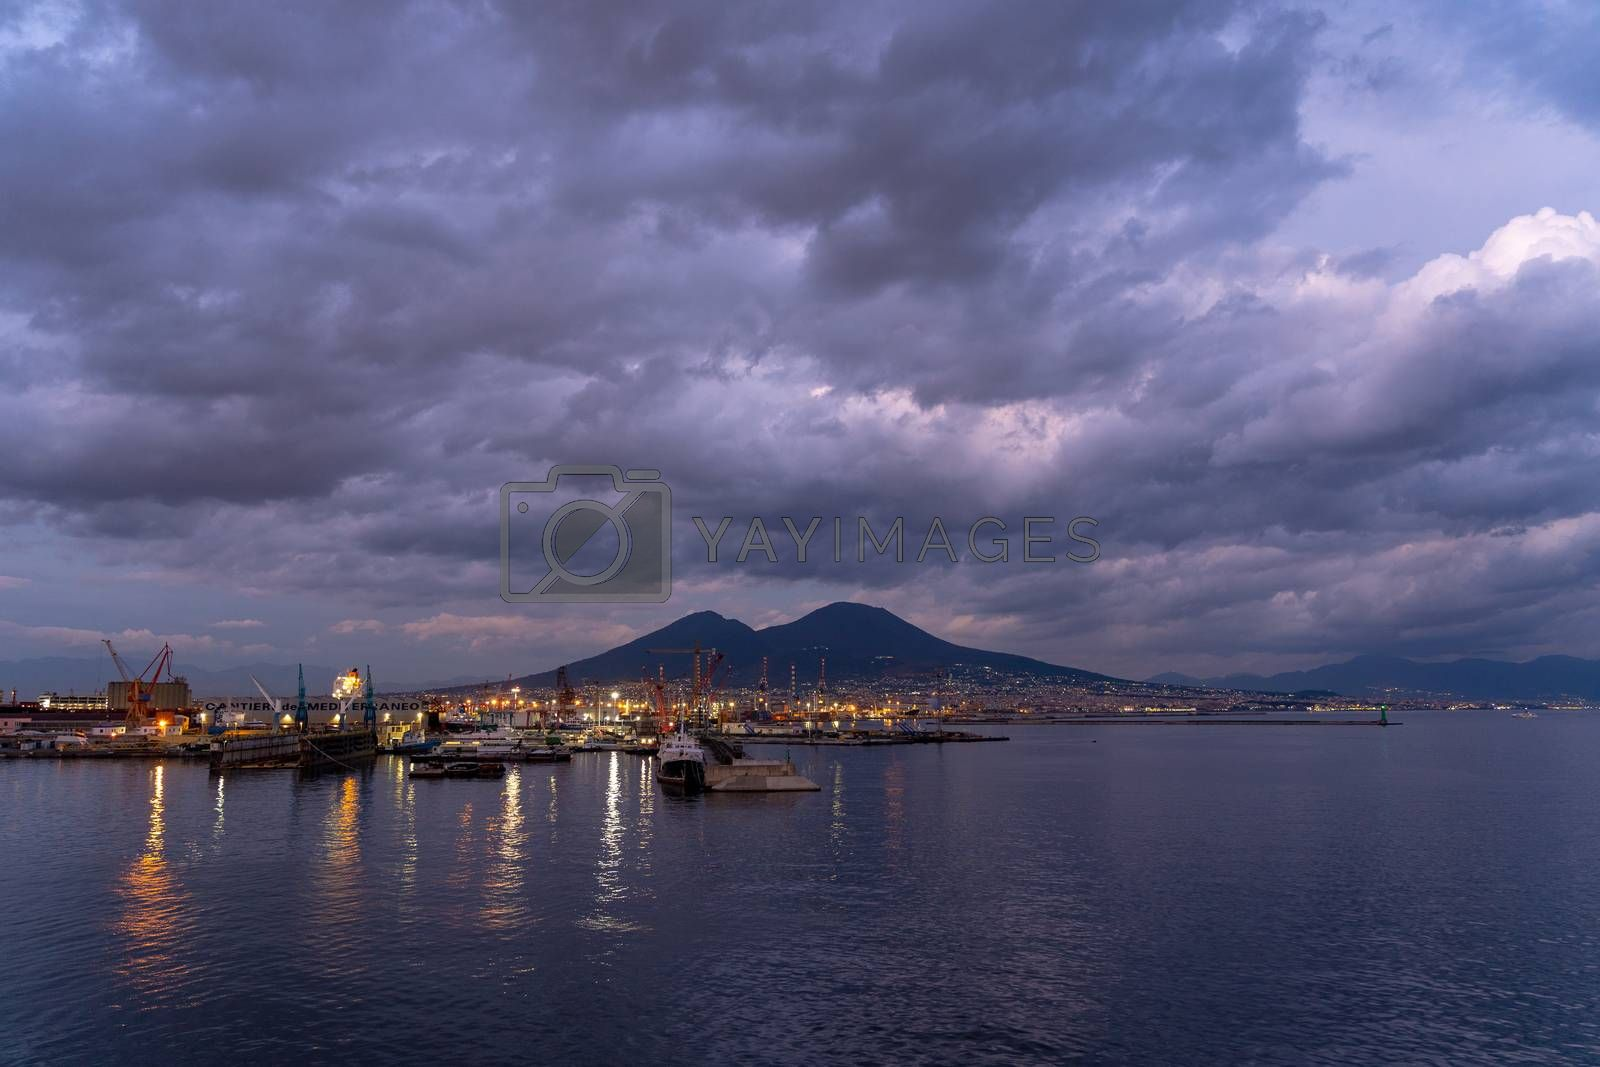 Royalty free image of Naples harbor at sunset with Vesuvius volcano, Italy. by maramade